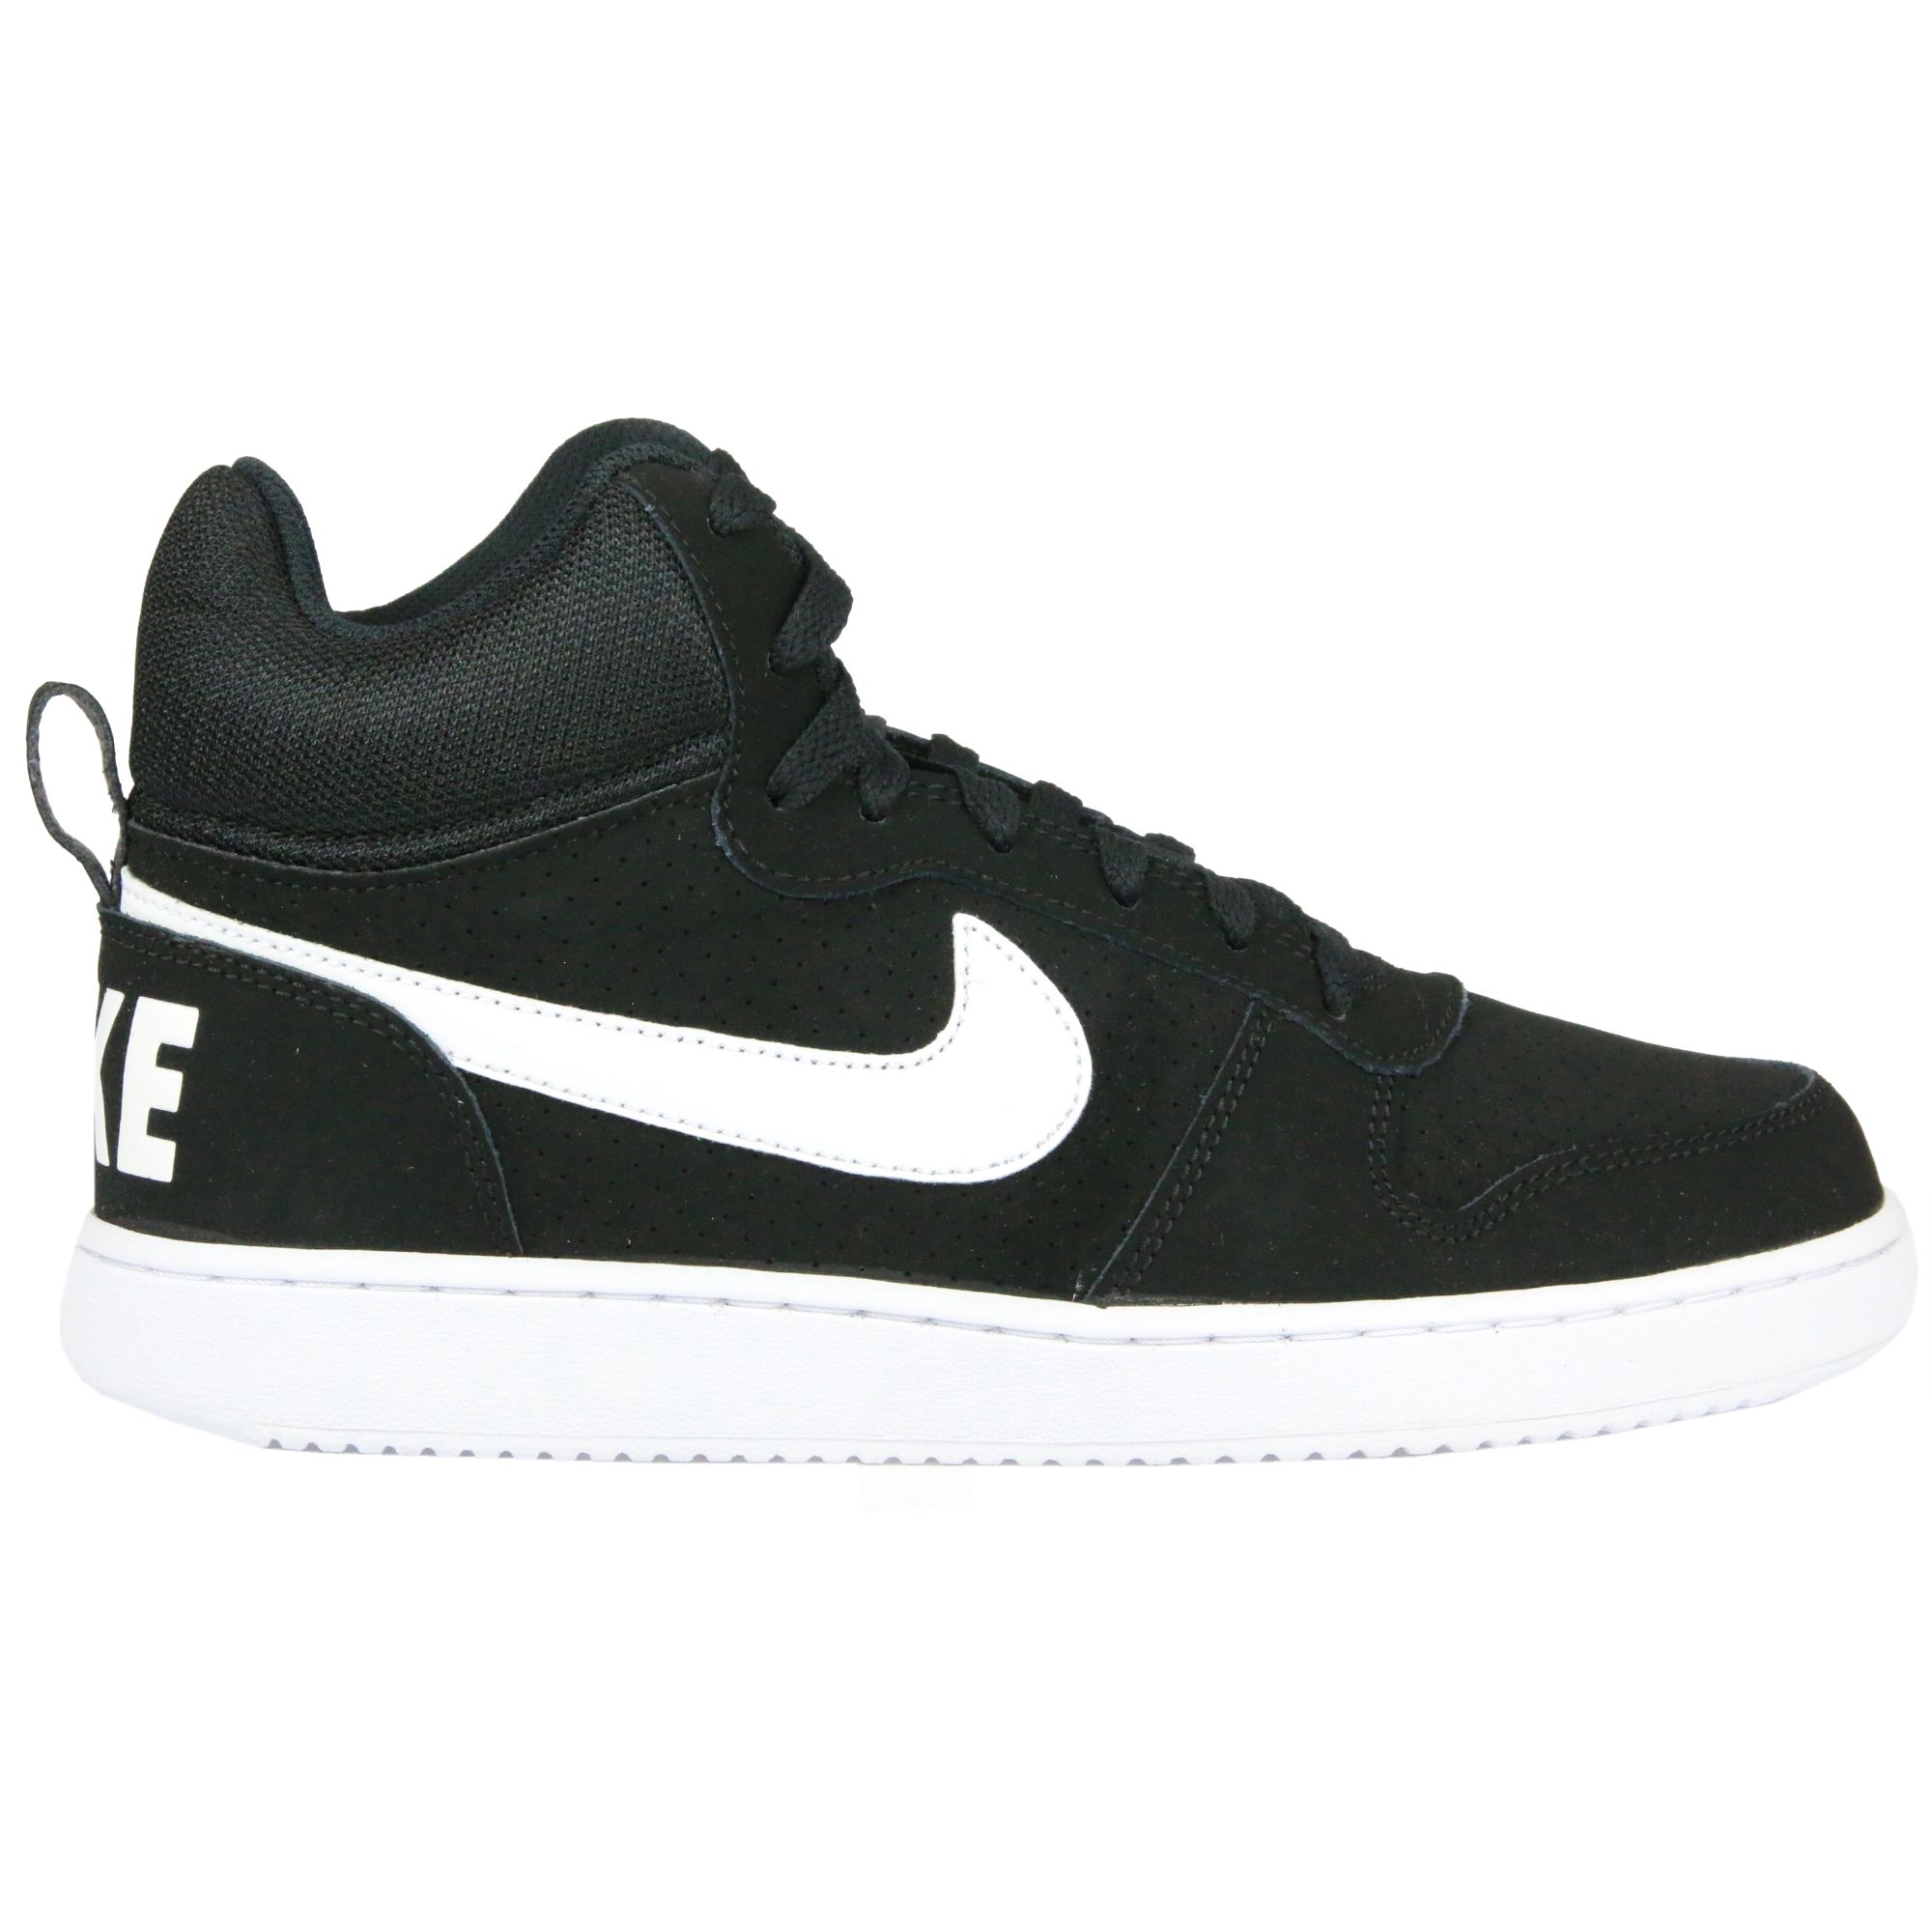 nike court borough mid schuhe turnschuhe sneaker echtleder herren schwarz ebay. Black Bedroom Furniture Sets. Home Design Ideas